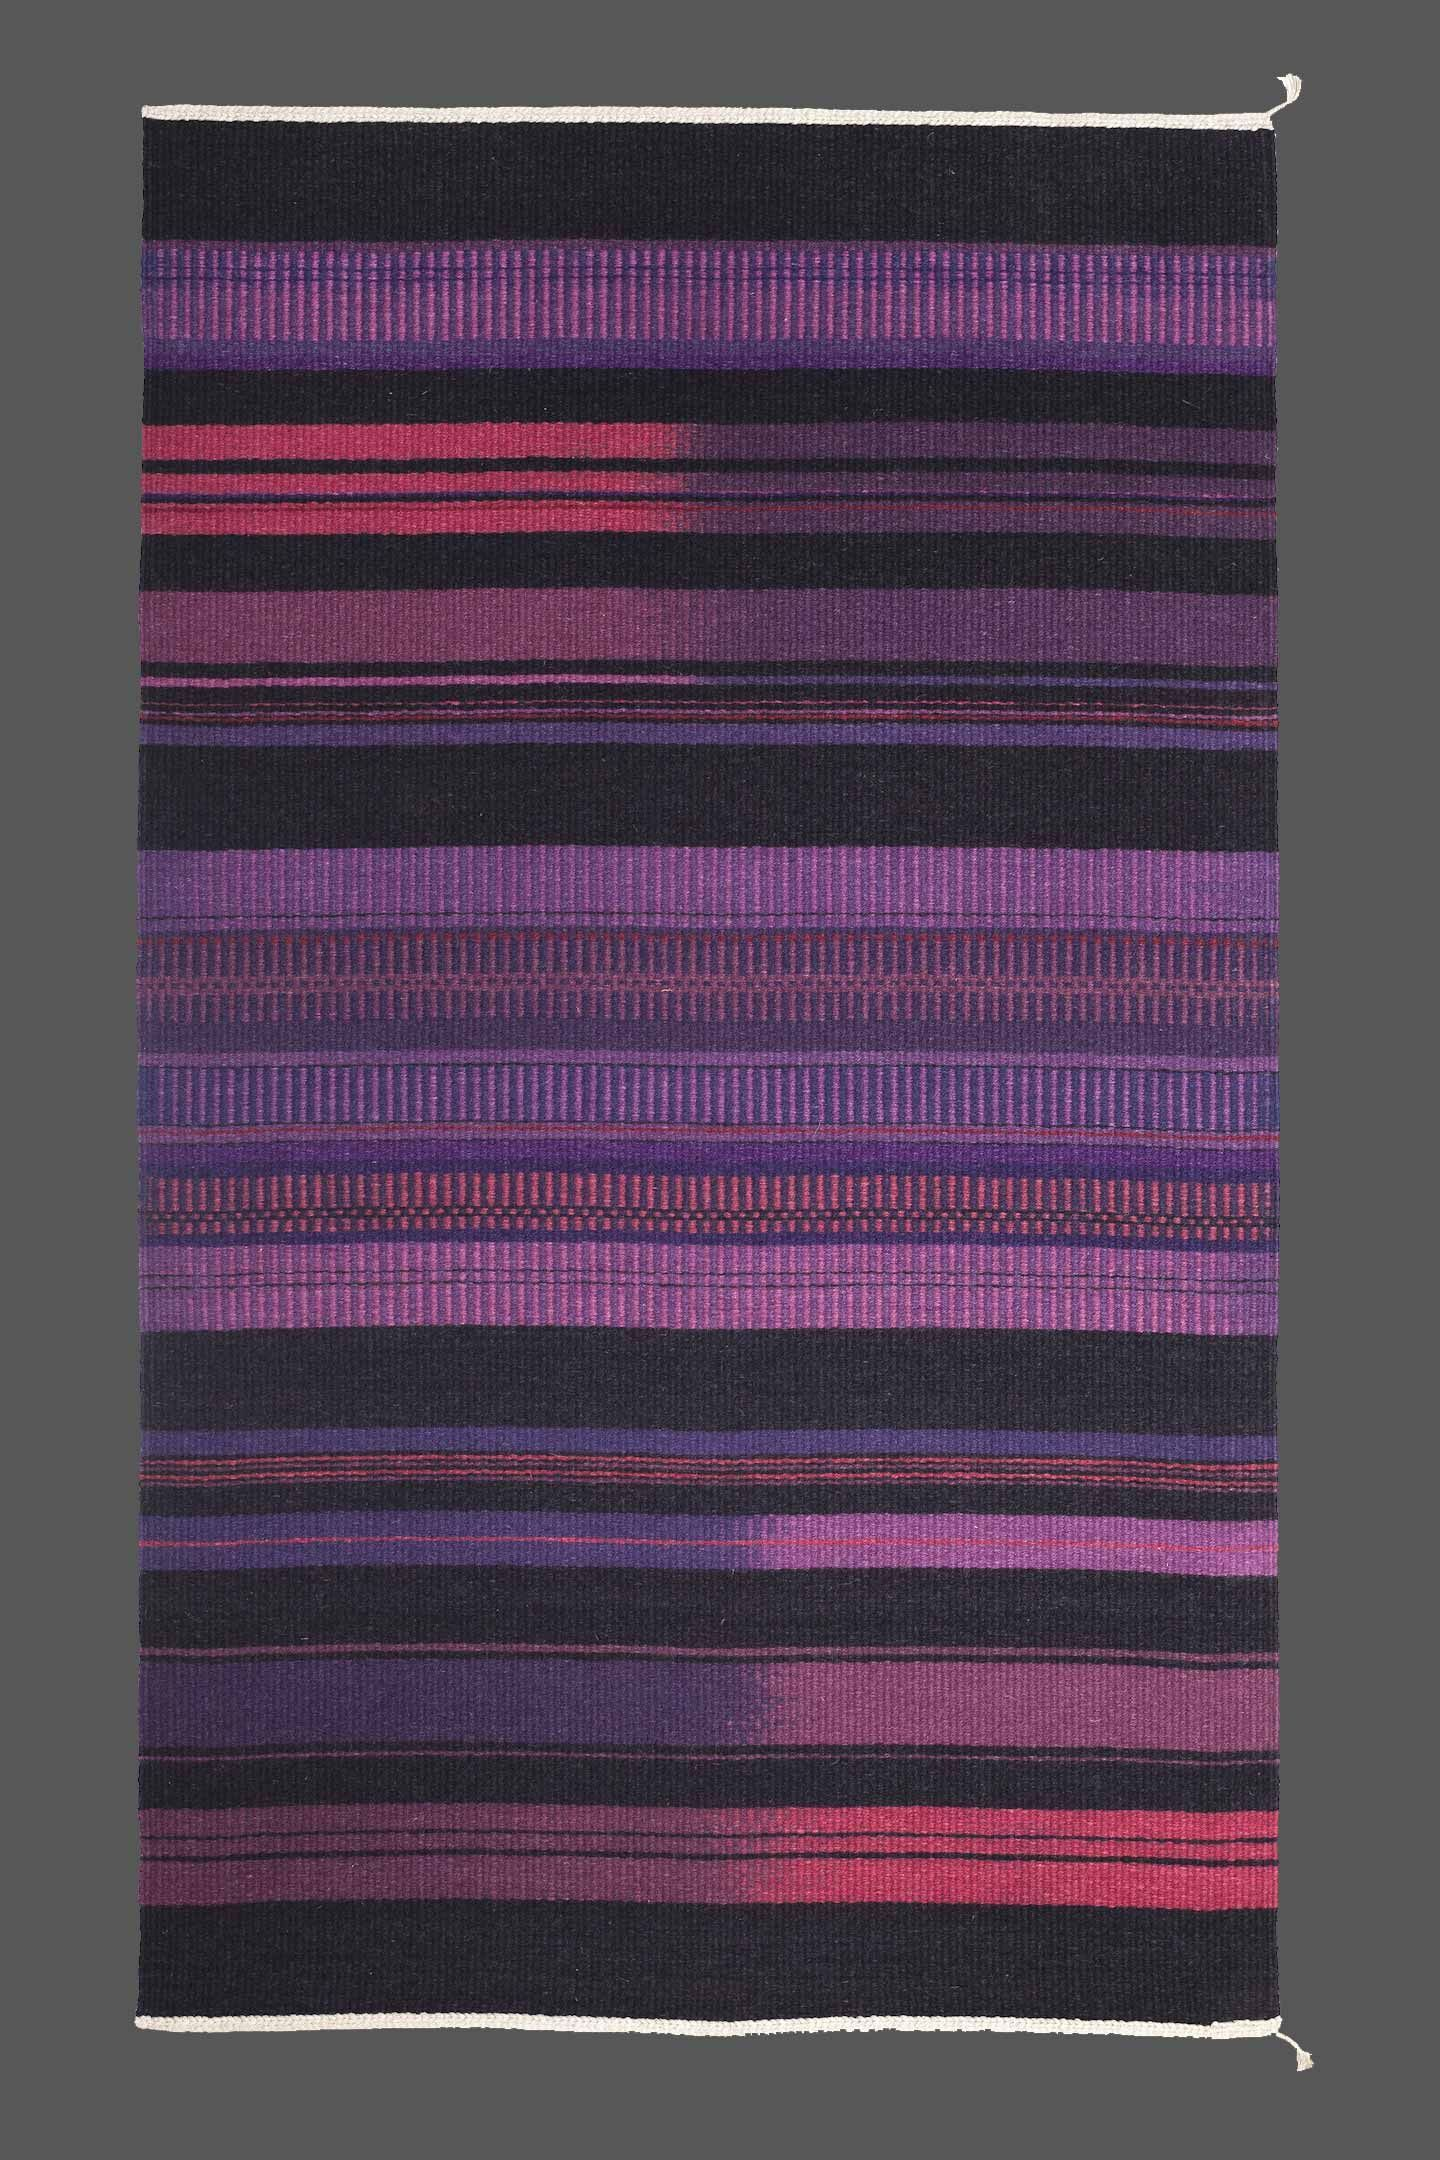 Handwoven ikat dyed wool rug with linen warp by marjorie